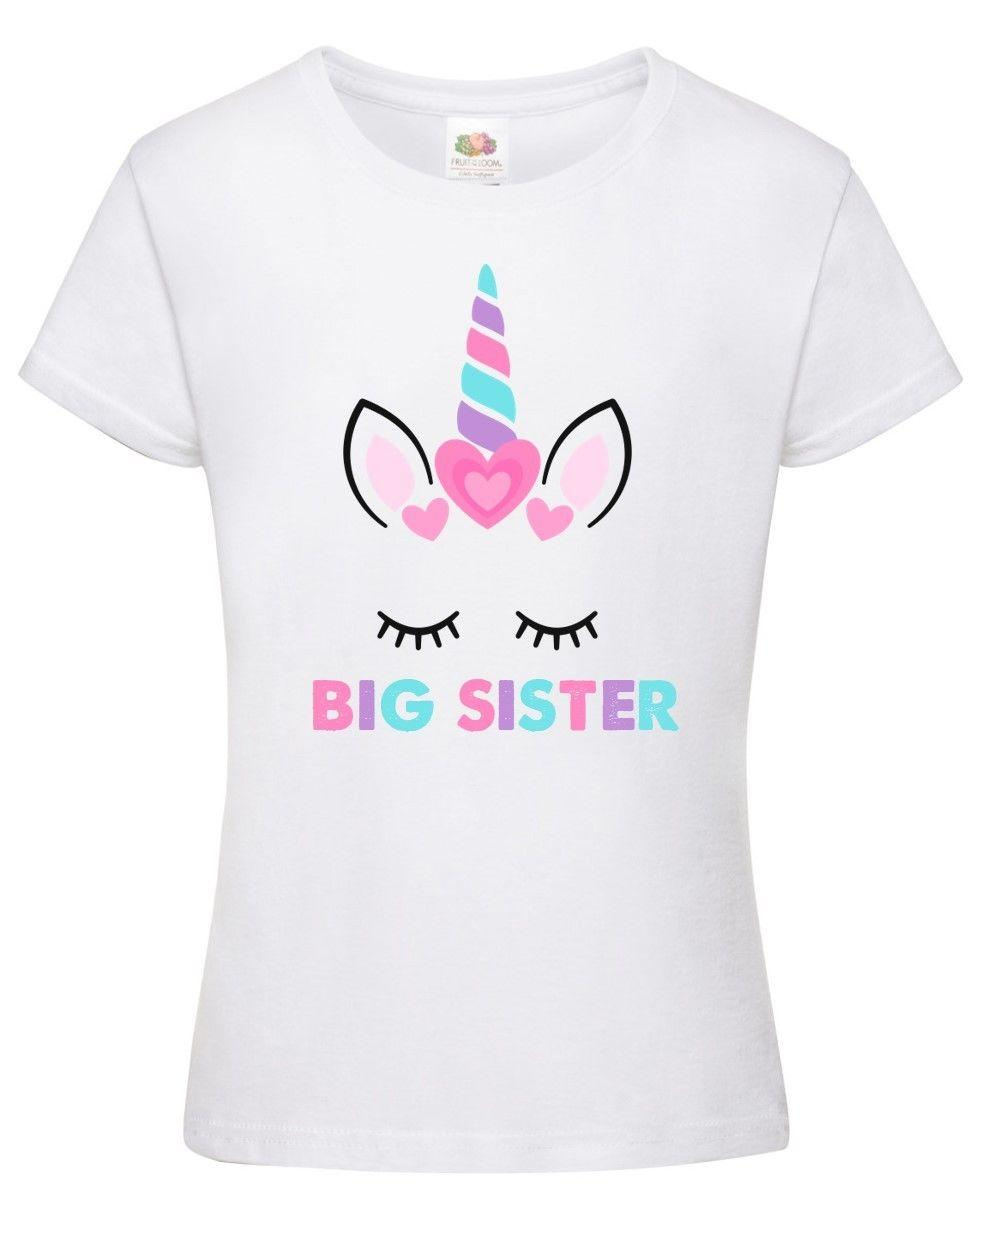 80ef17245c51 Big Sister Unicorn Girls T Shirt Printed Pregnancy Reveal Party Gift Top  Pink It Tee Shirts As T Shirt From Designtshirts201806